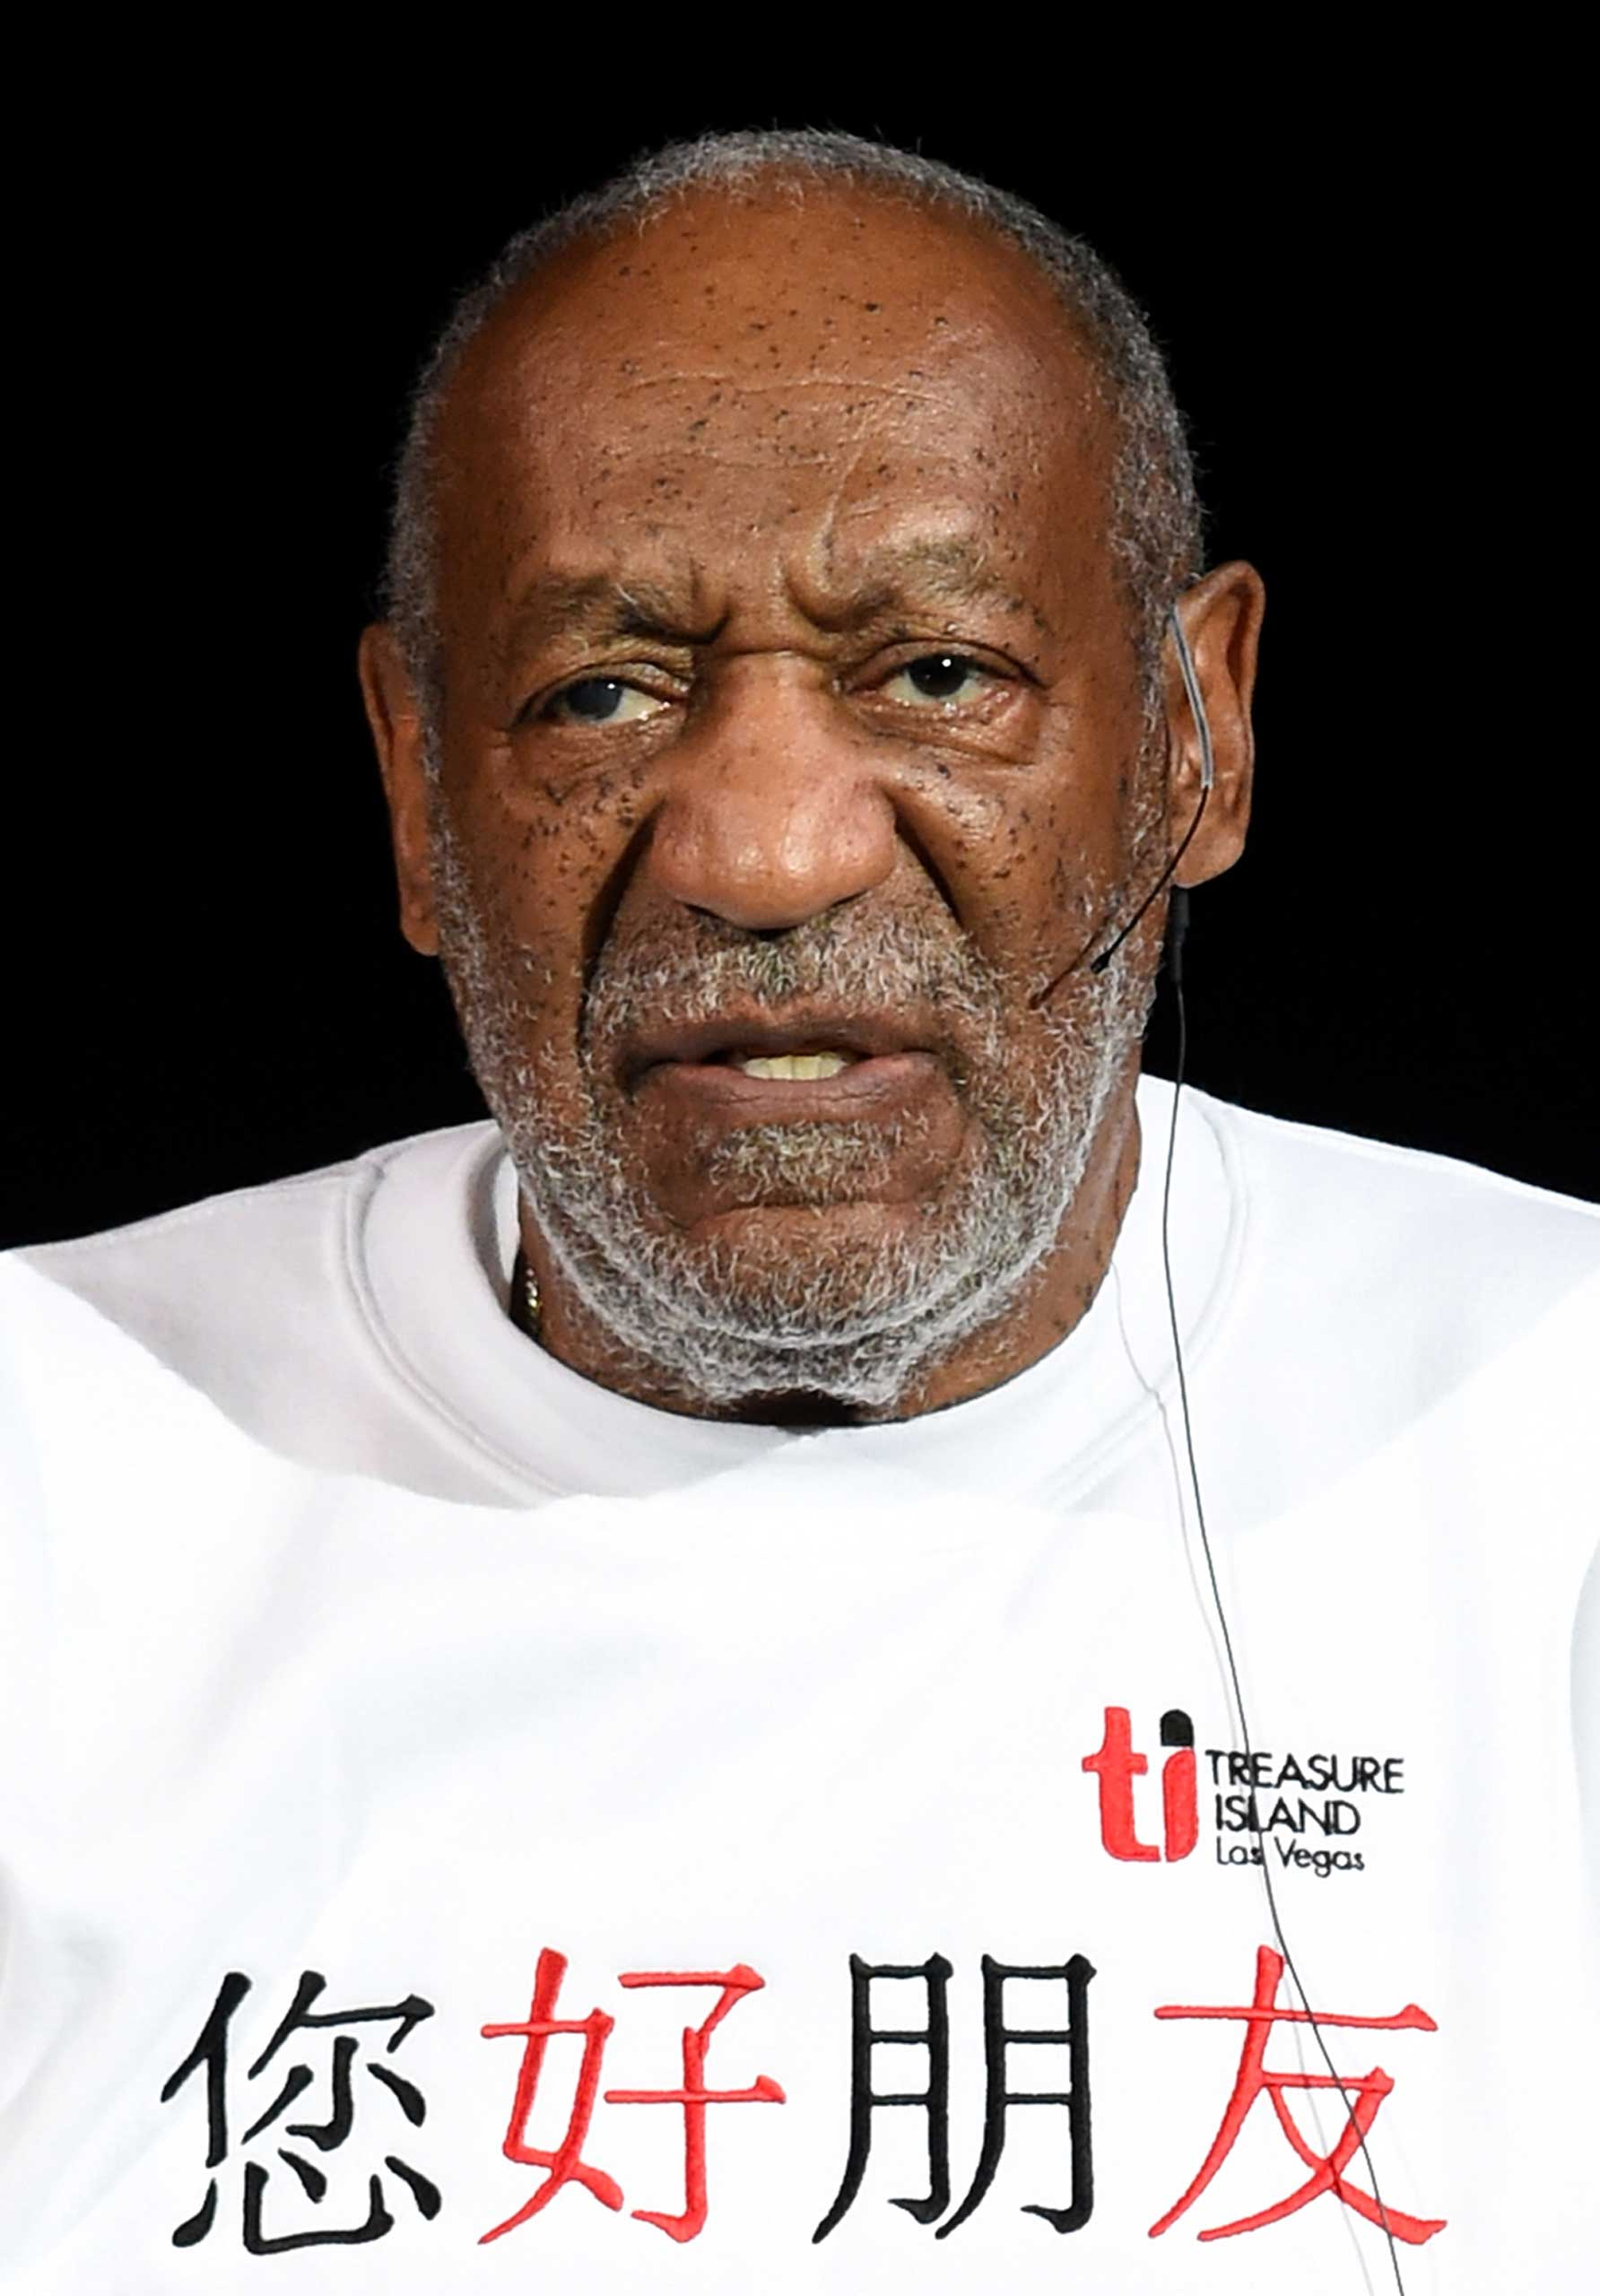 Comedian/actor Bill Cosby performs at the Treasure Island Hotel & Casino in Las Vegas, on September 26, 2014